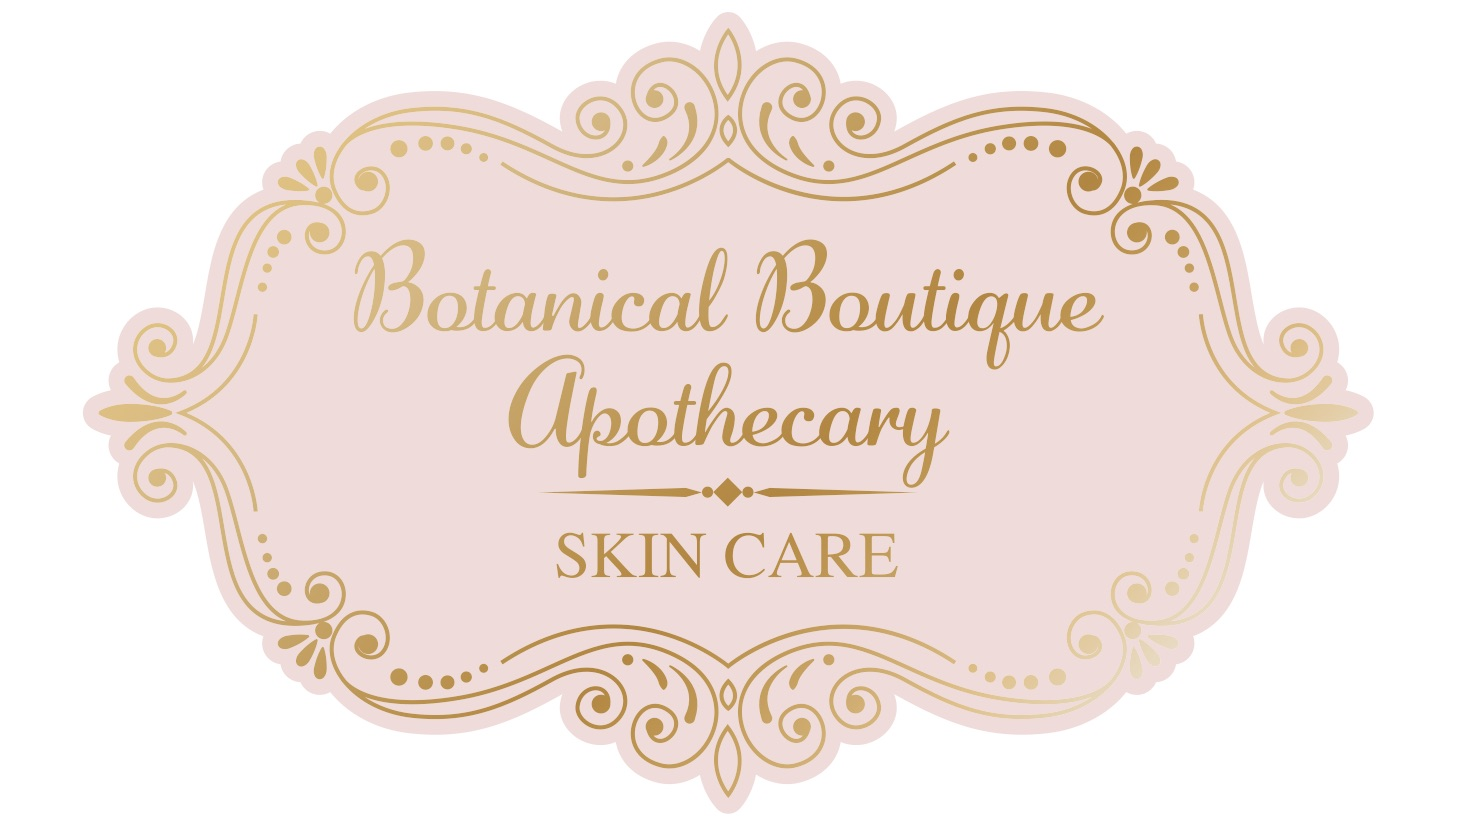 Botanical Boutique Apothecary